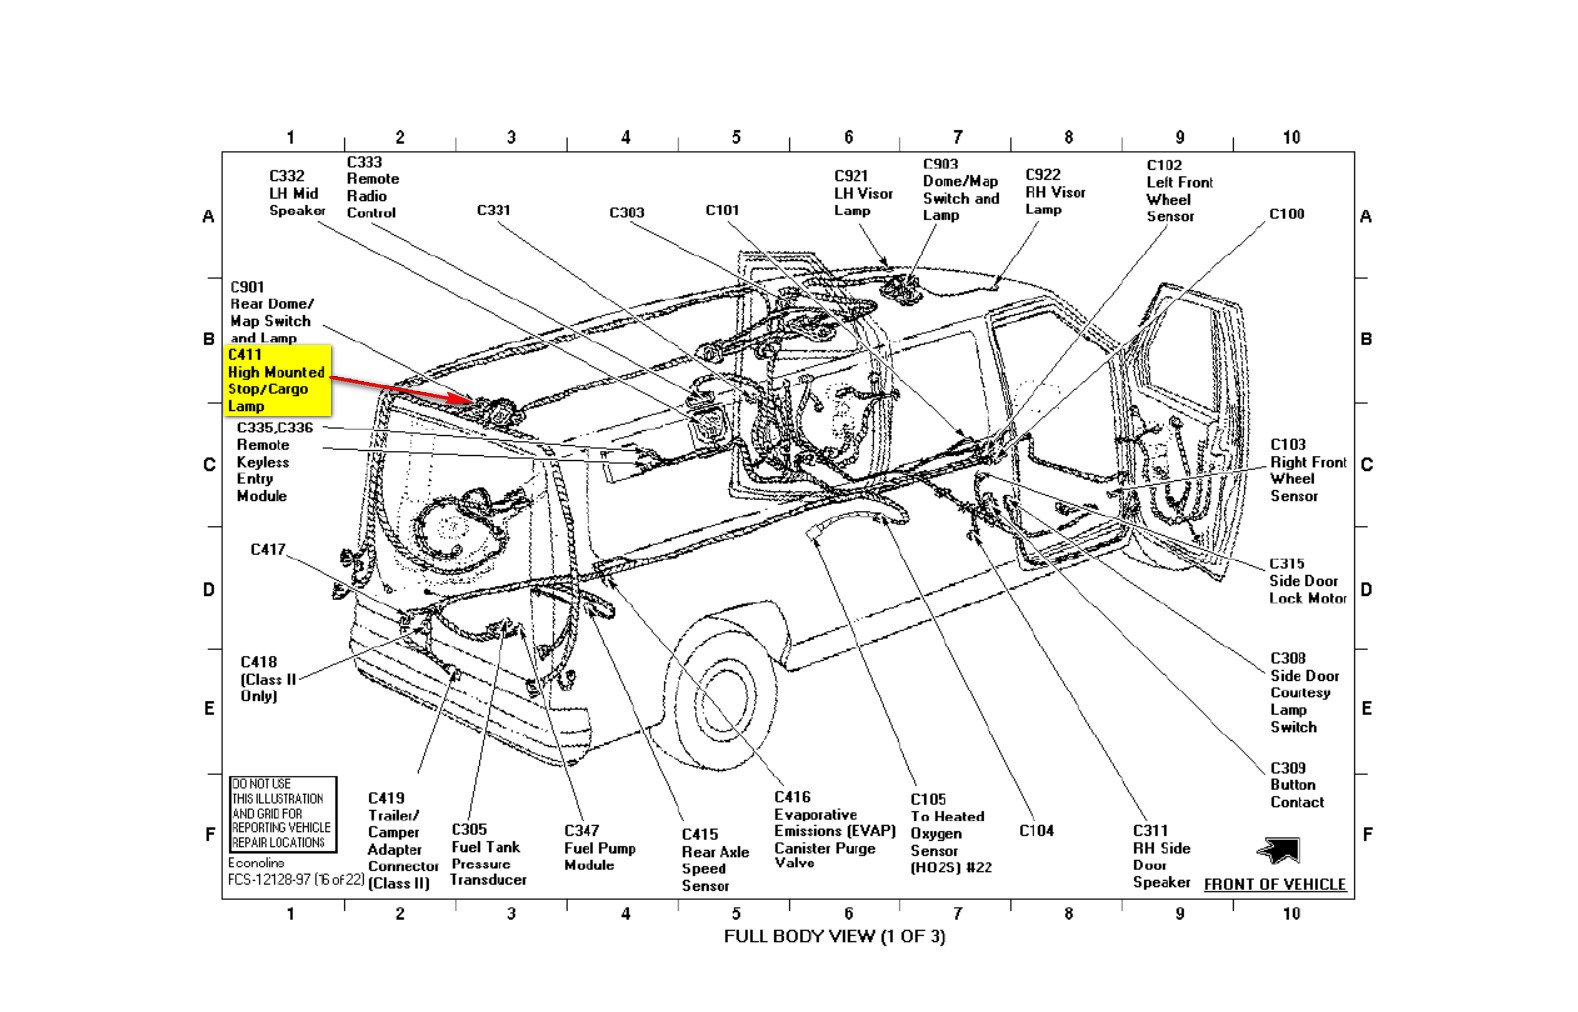 turn signal flasher diagram  diagrams  wiring diagram images